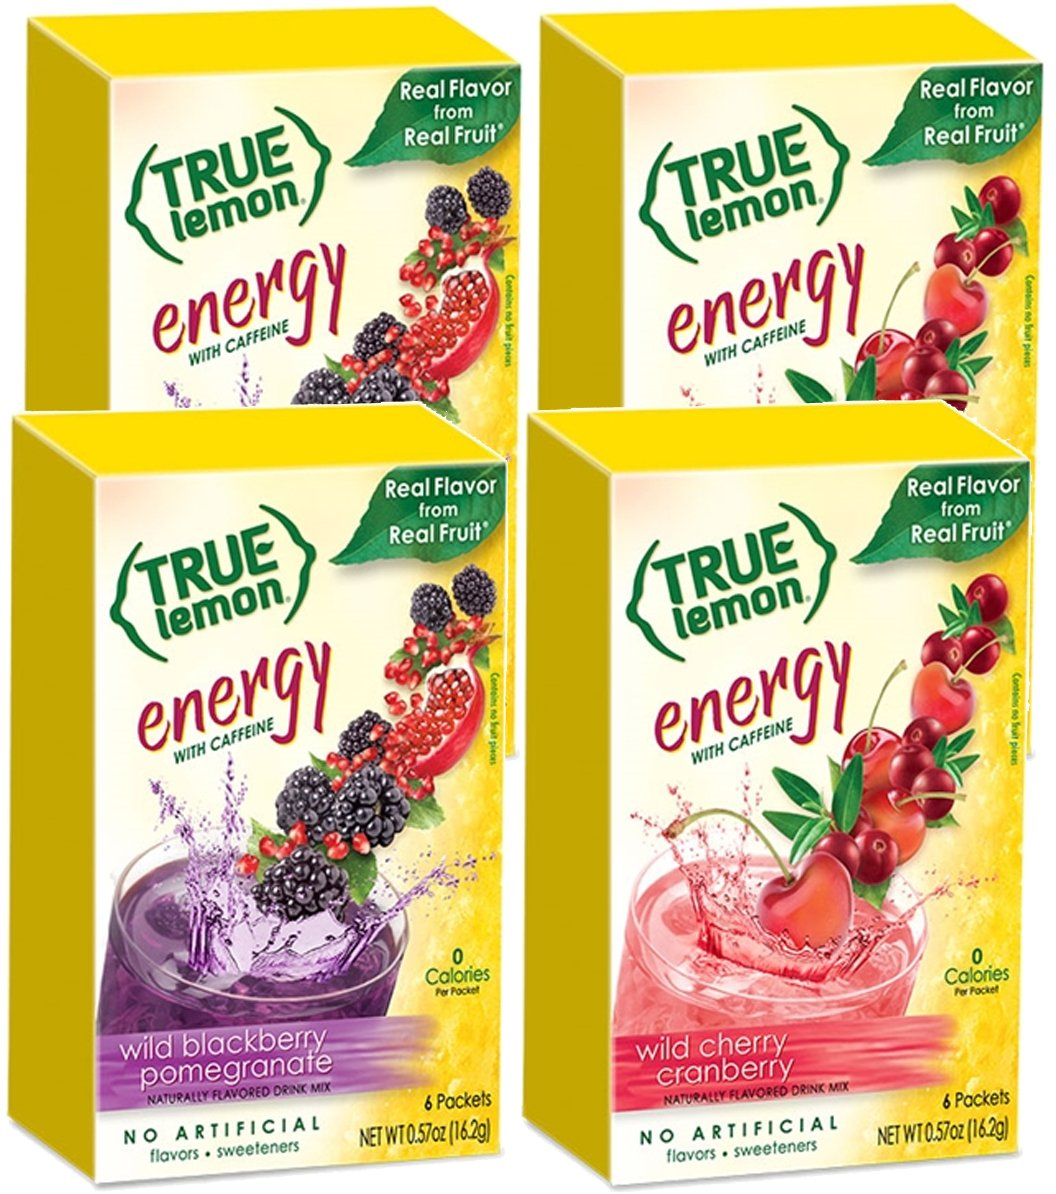 True Lemon (Energy Drinks) Wild Cherry Cranberry & Wild Blackberry Pomegranate 2 boxes EACH flavor (4 boxes total), 24ct instant powdered drink mix packets total, by True Citrus